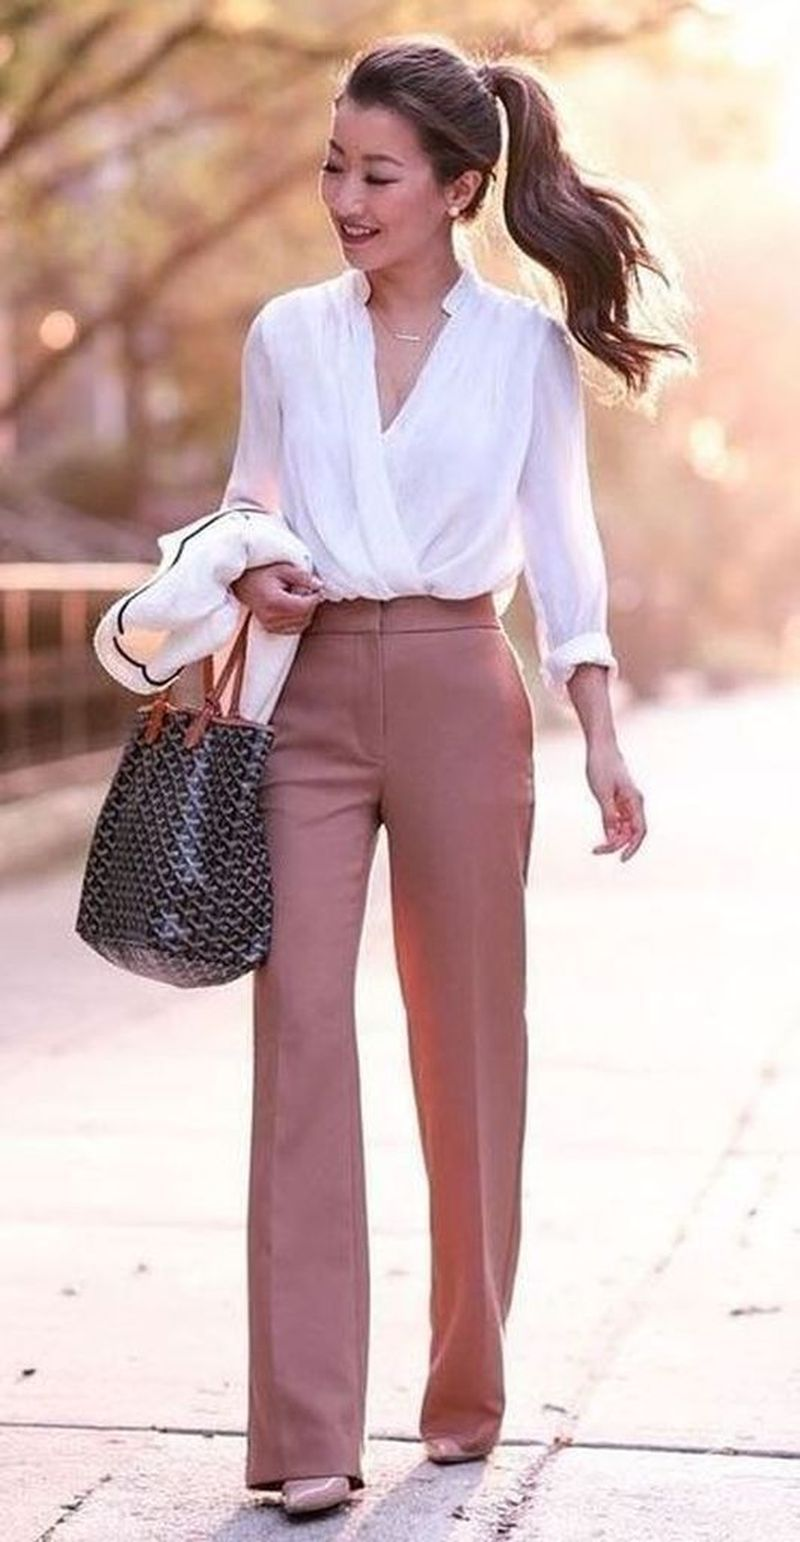 42 Casual Spring Work Outfits Ideas for Women - Explore Dream Discover Blog